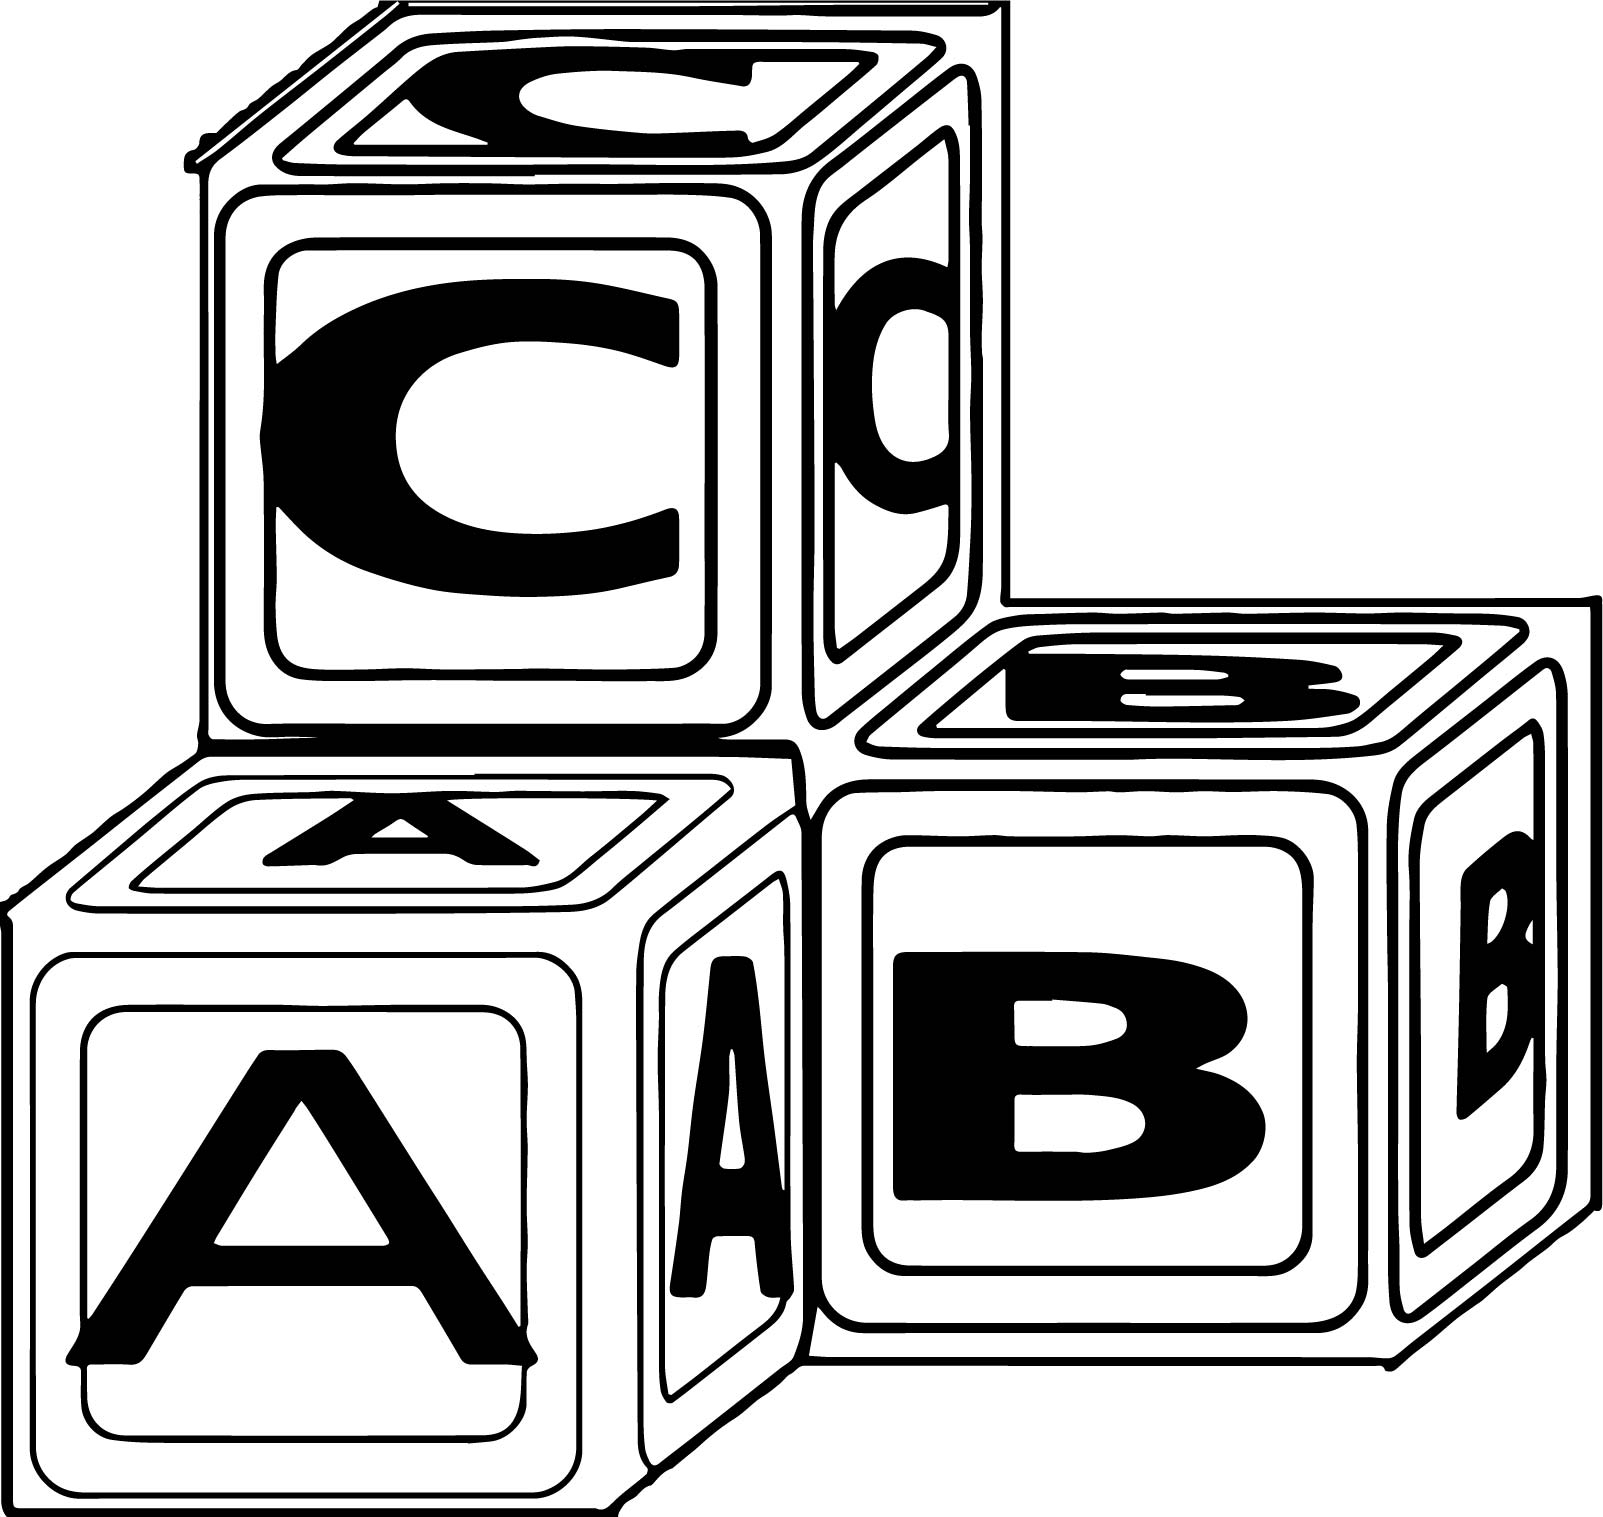 Coloring Pages Of Alphabet Blocks : Toy blocks drawing coloring pages of alphabet